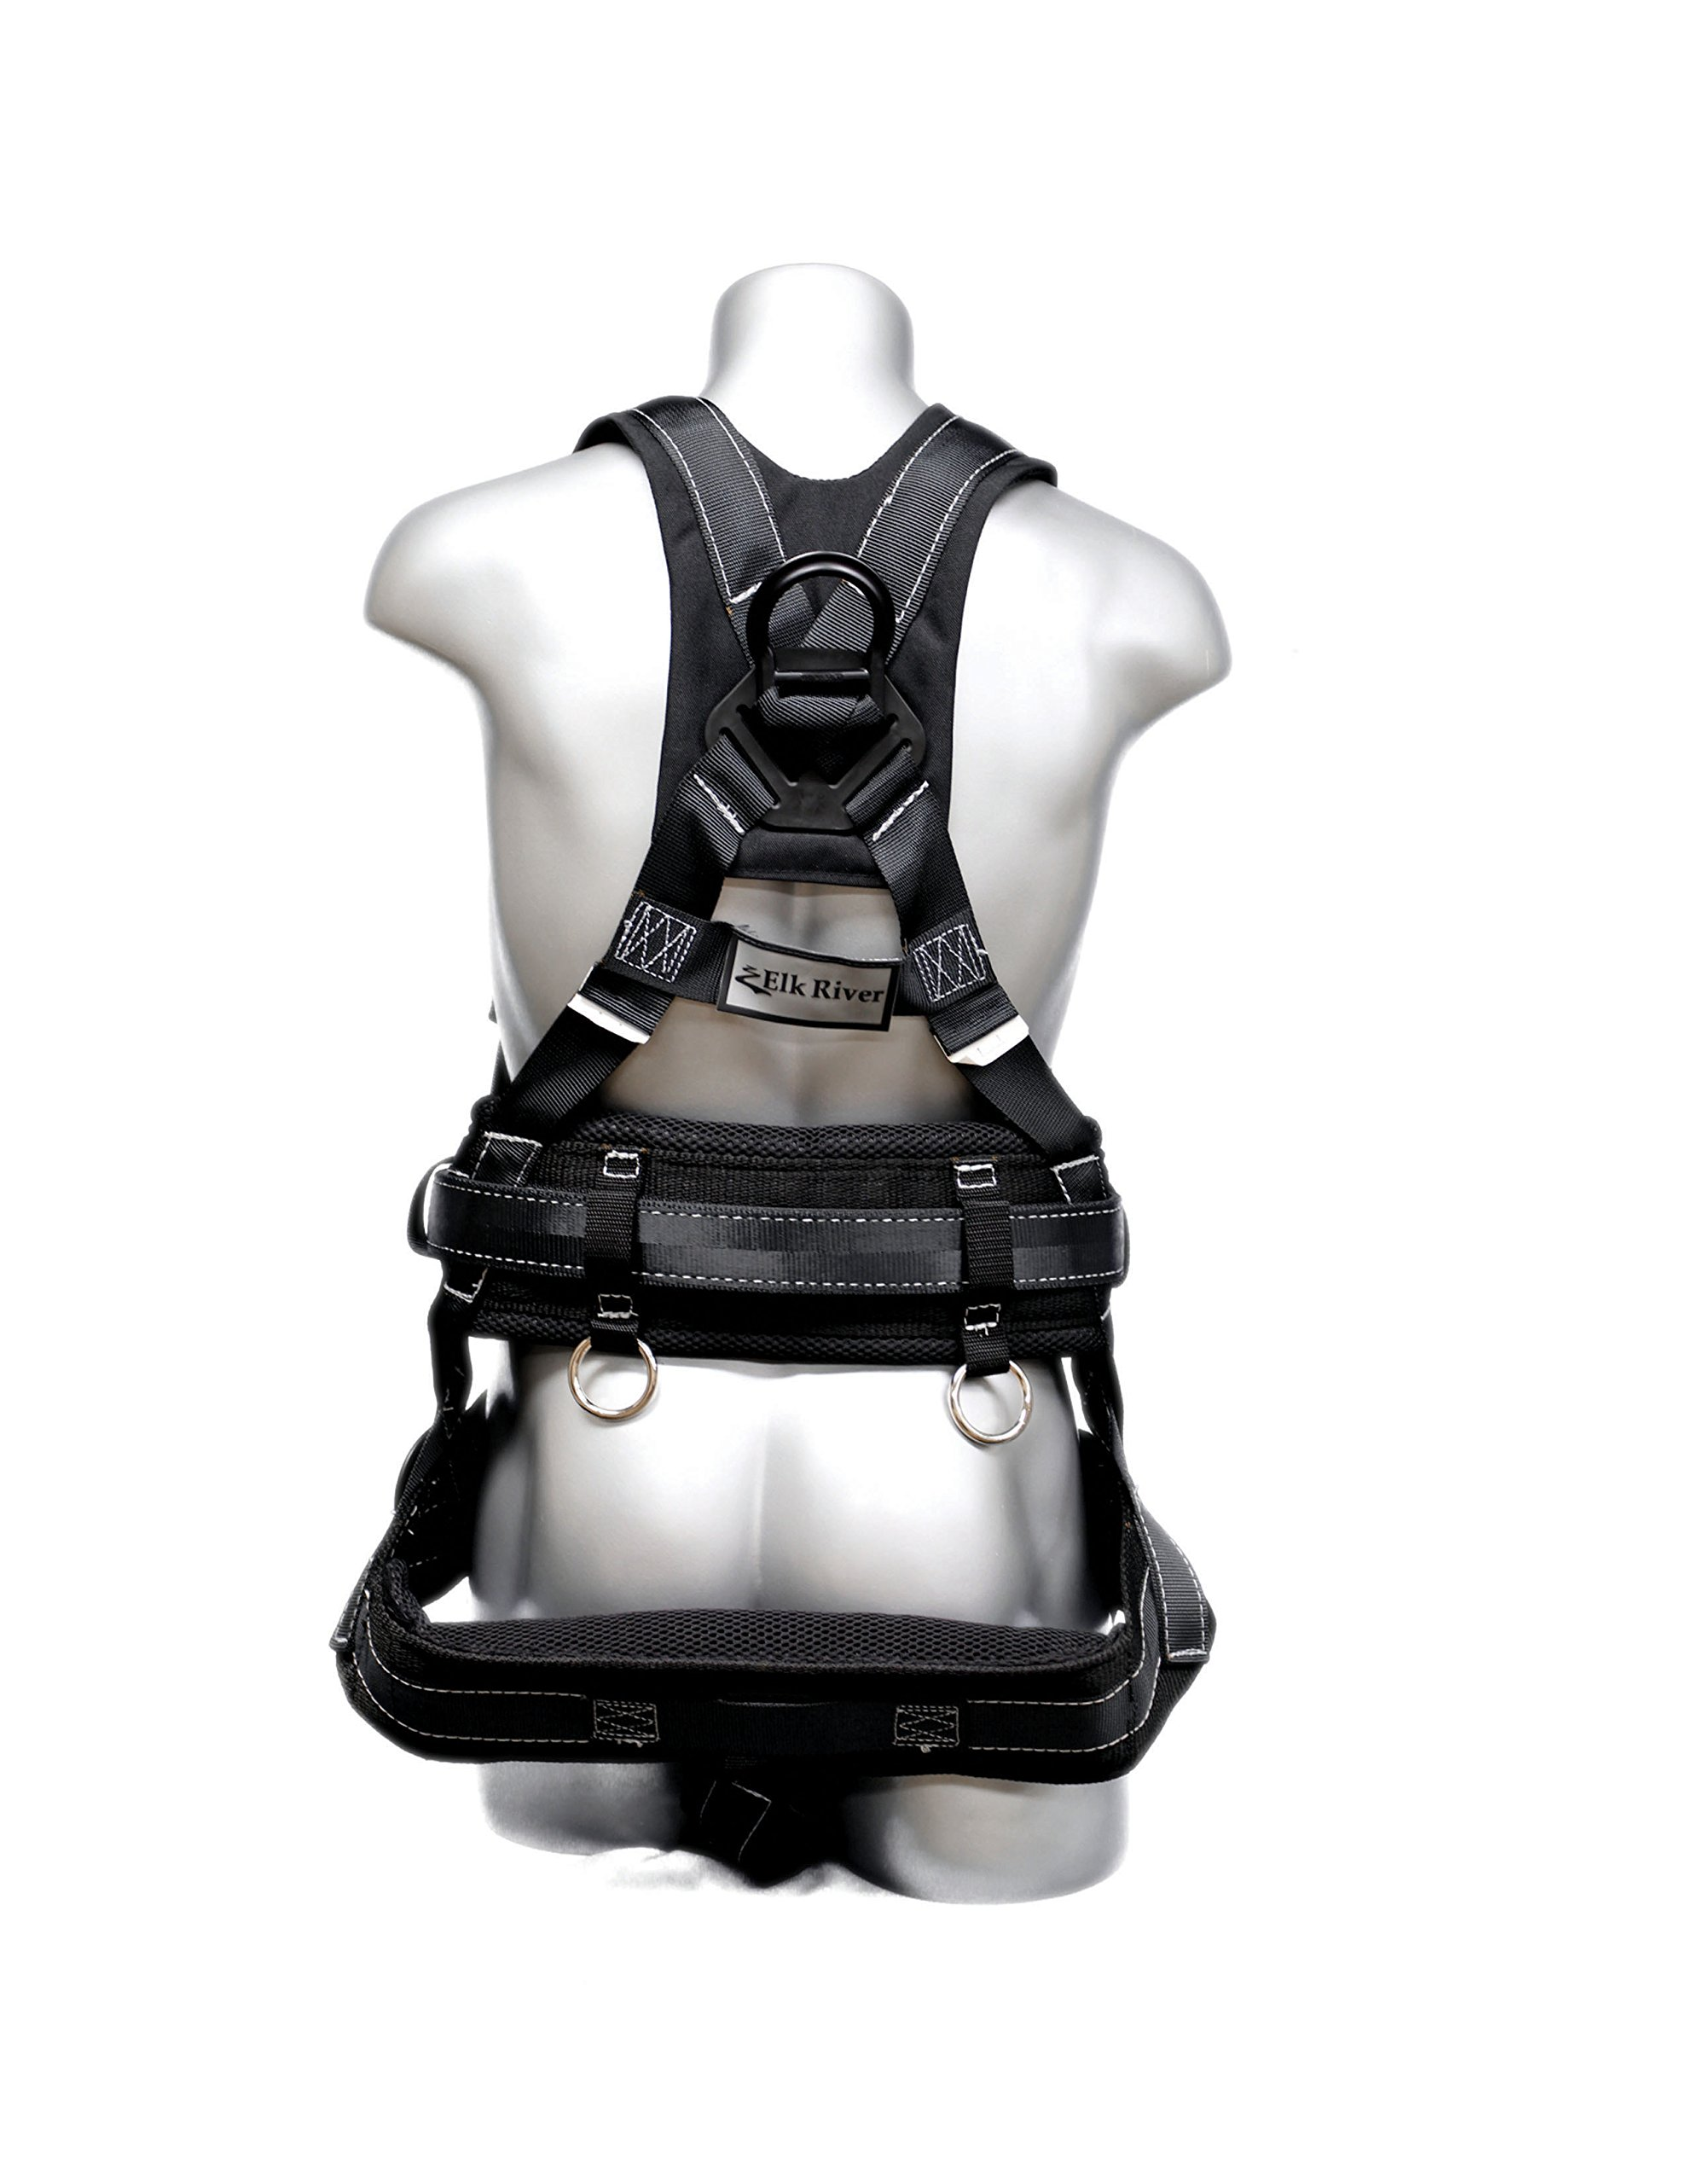 Elk River 67601 Polyester/Nylon Peregrine Platinum Series 6 D-Ring Harness with Quick-Connect Buckles, Small by Elk River (Image #2)